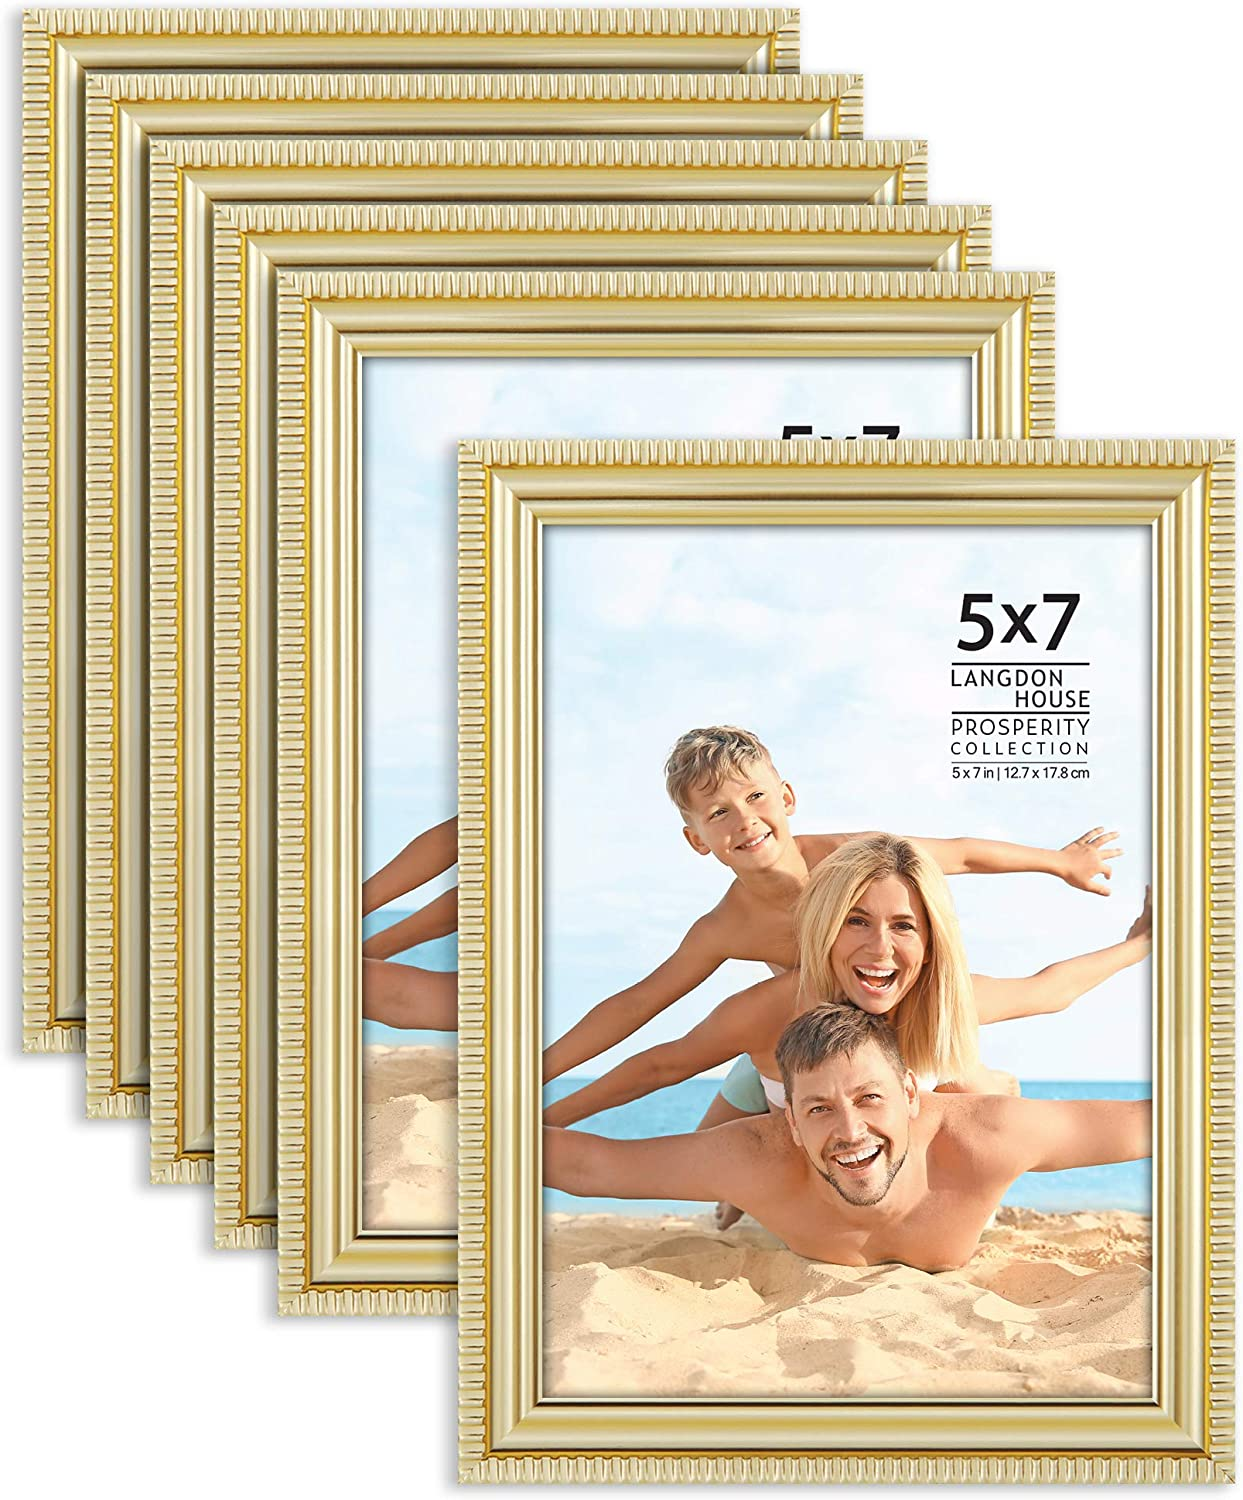 Wall Mount or Table Top 13x18 cm Gold, 6 Pack Picture Frames Contemporary Frame Set Prosperity Collection Langdon House 5x7